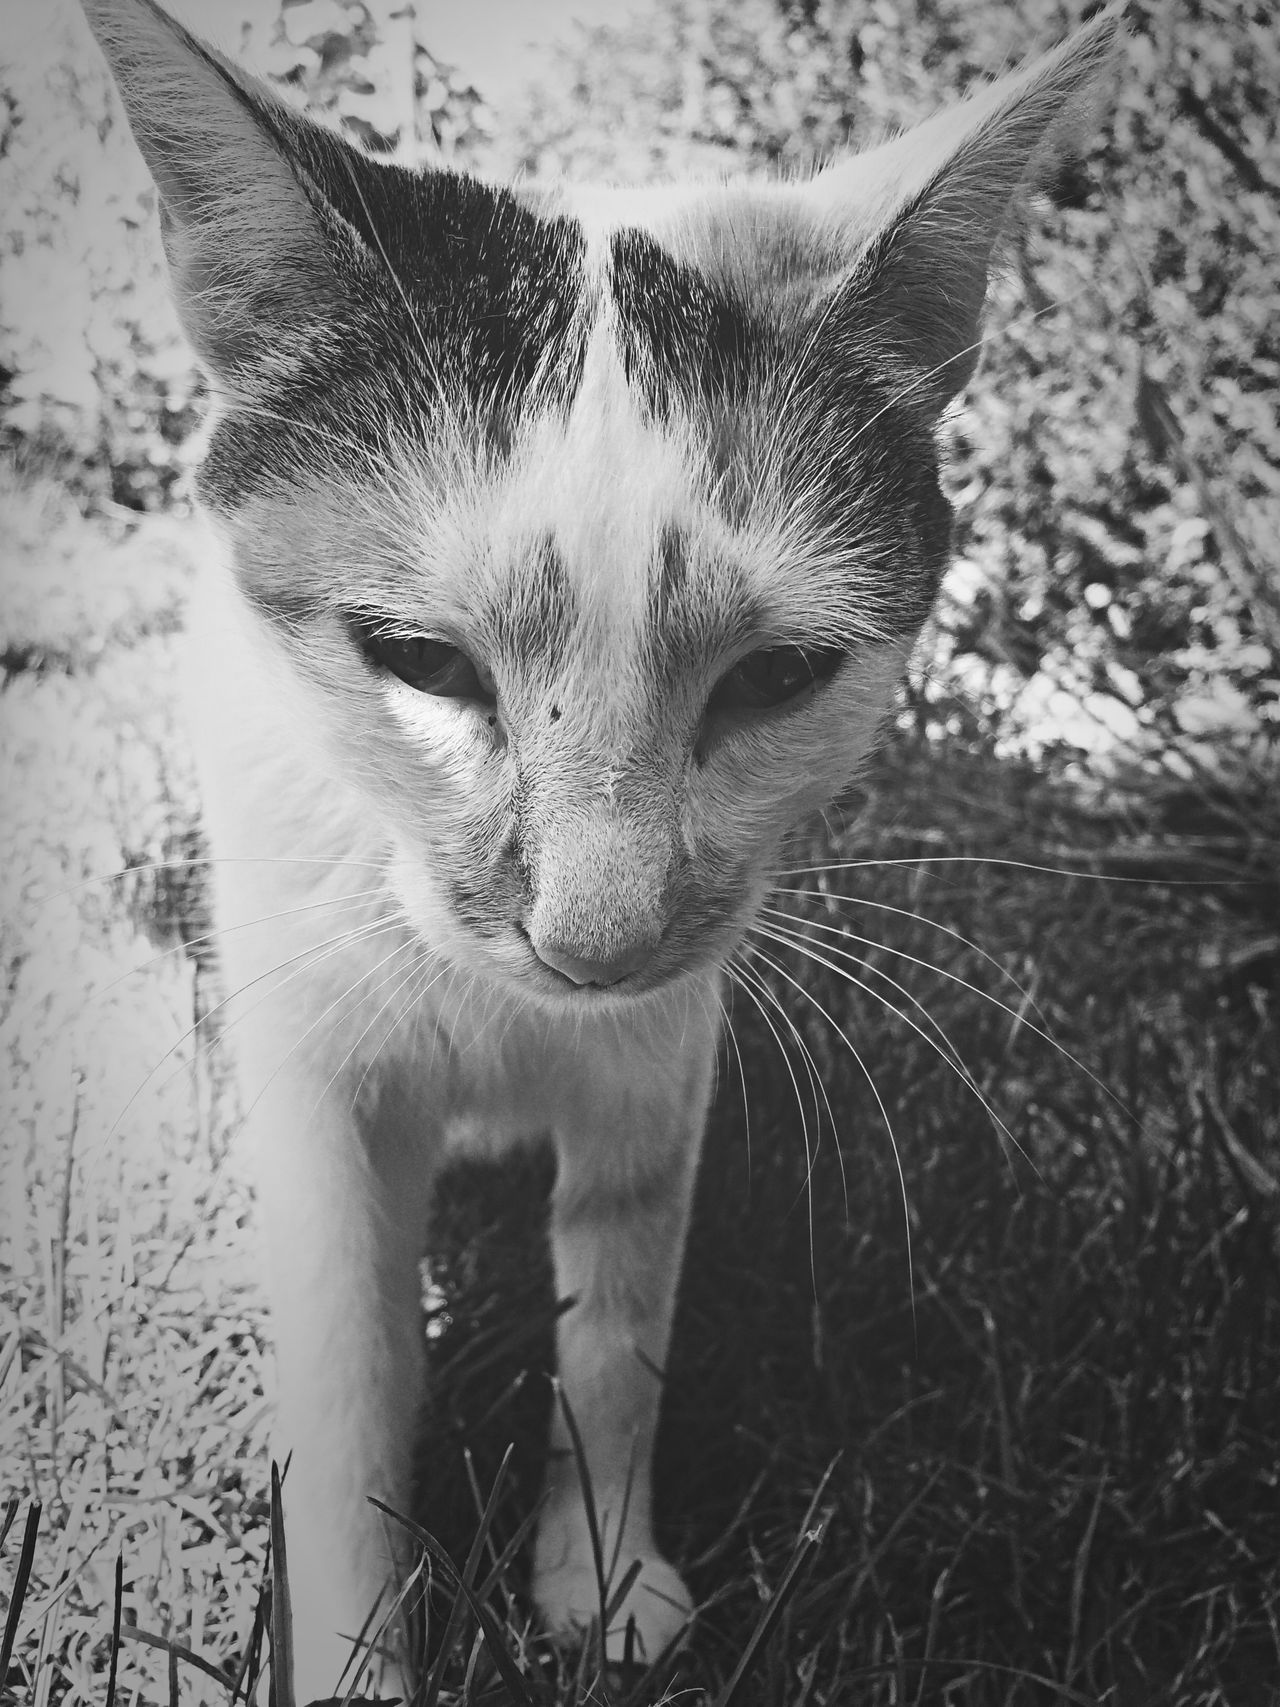 Blackandwhite Monochrome Cat Animals